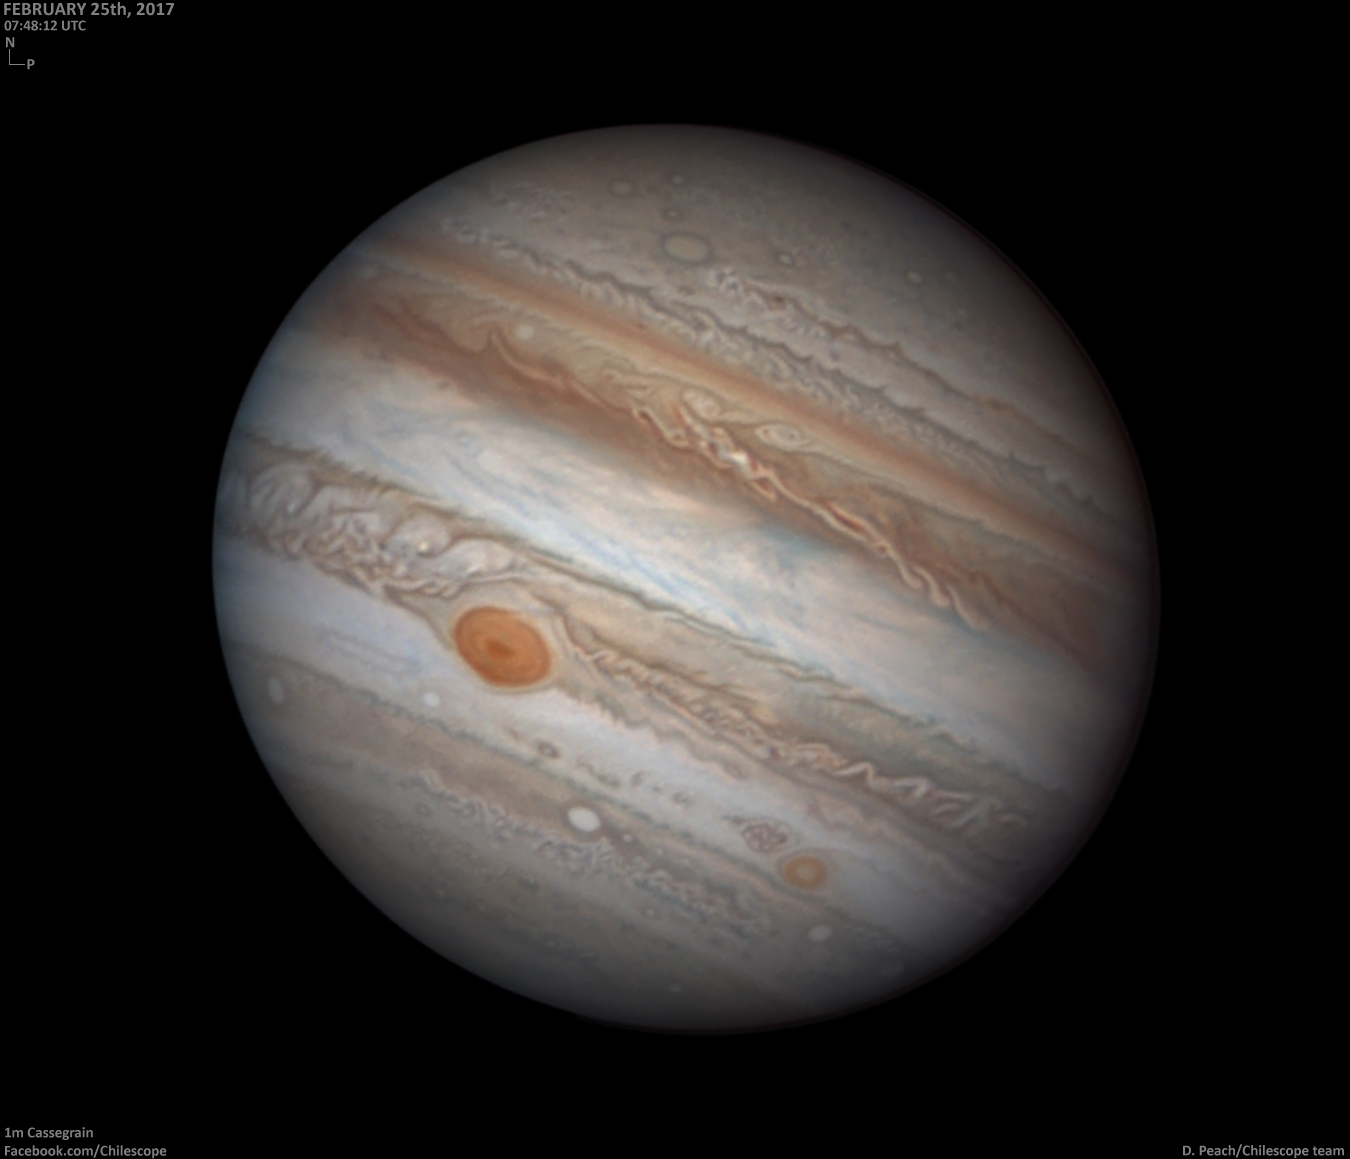 Real Pictures Of Jupiter The Planet Space in Images - 2017...